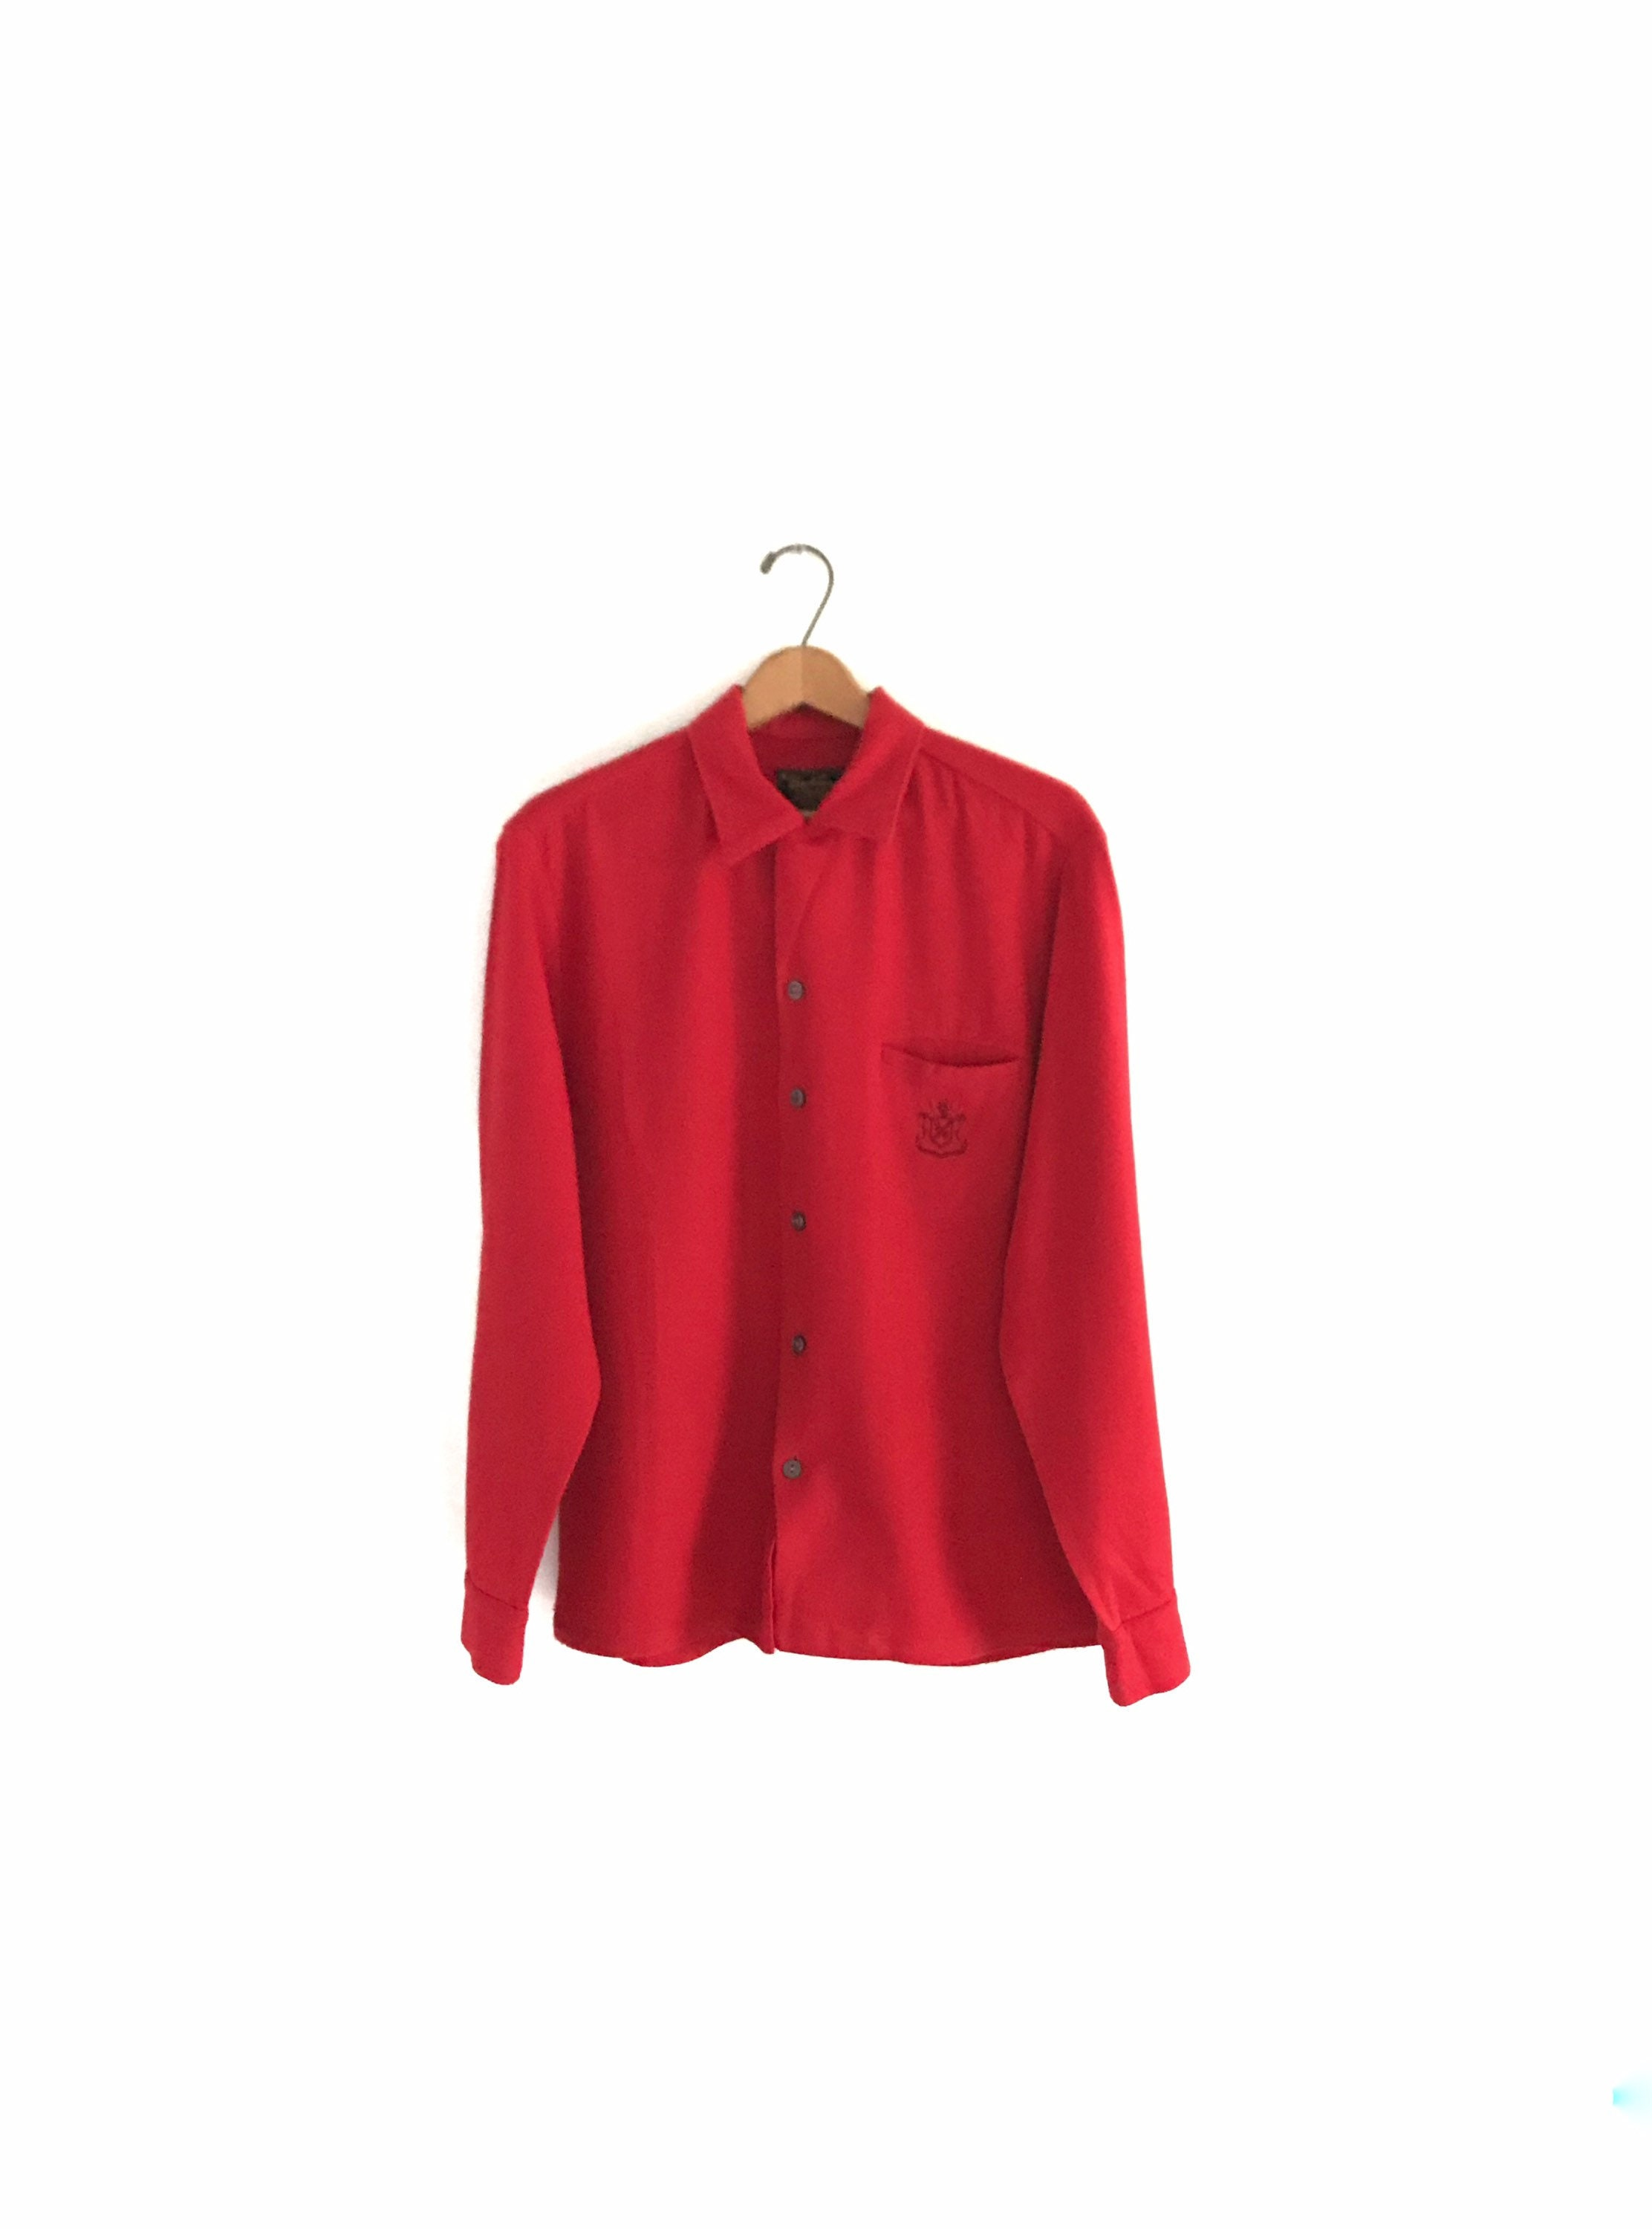 1950s Men's Ties, Bow Ties – Vintage, Skinny, Knit Vintage Circa 1950s Sportsman Long Sleeved Red Wool Button Down Shirt Mens Medium With Crest $30.00 AT vintagedancer.com